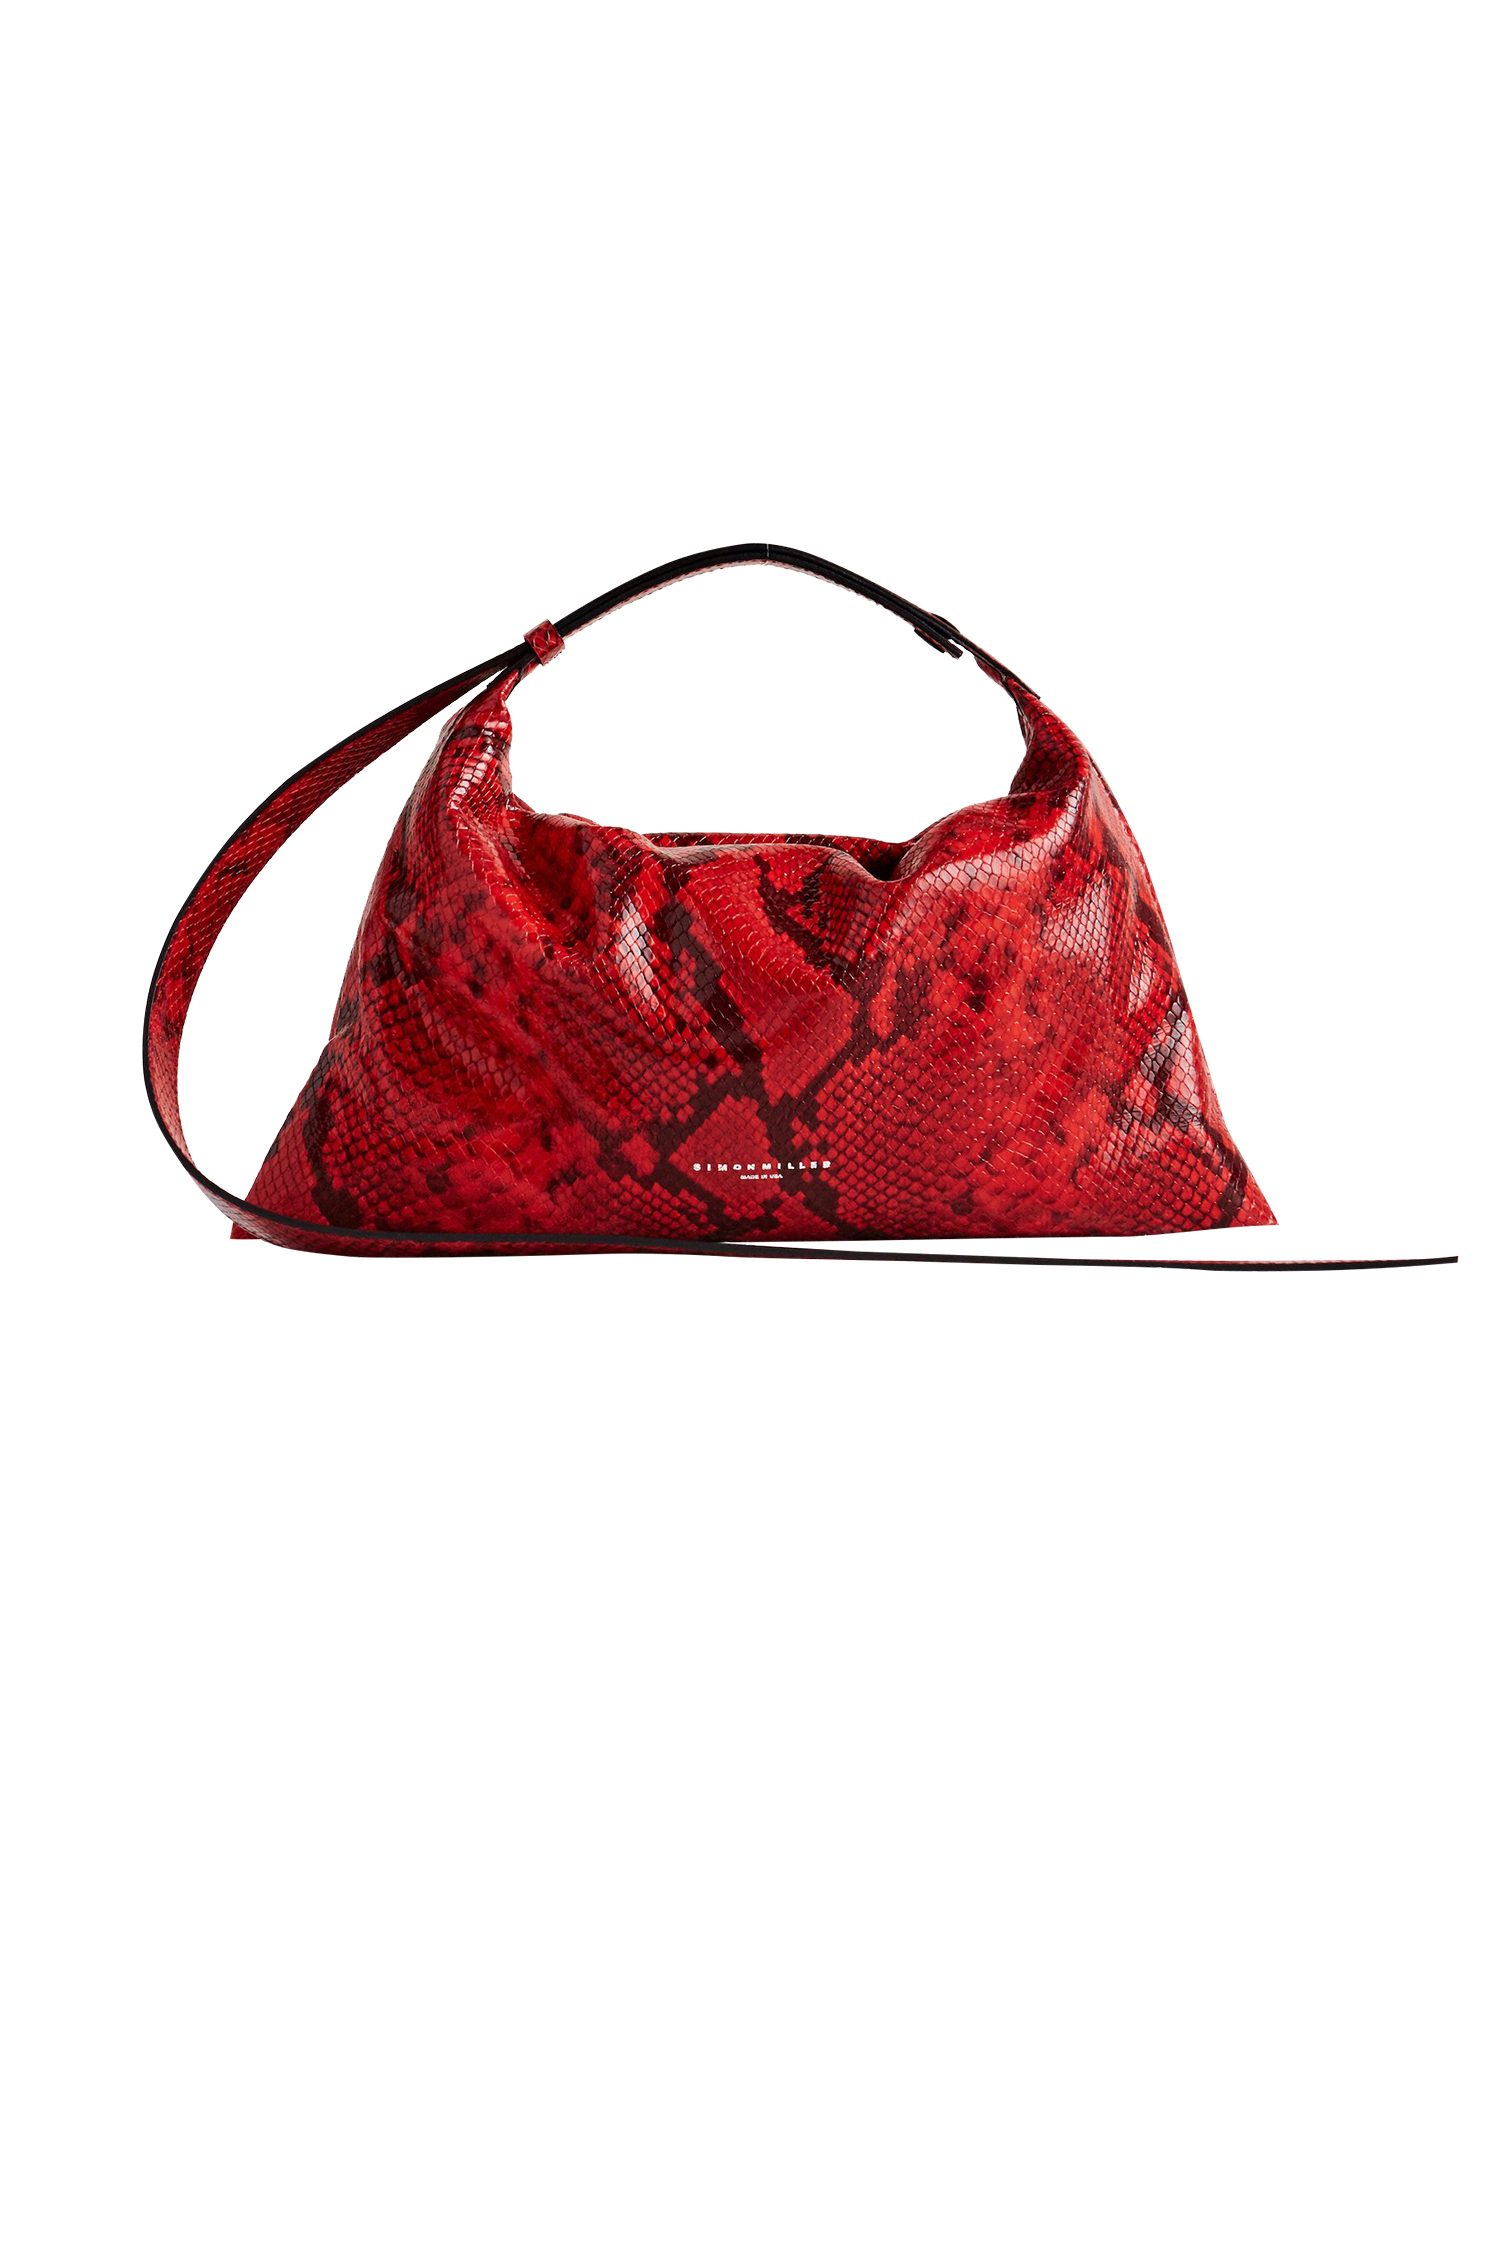 Puffin Bag in Tango Red by Simon Miller - 1